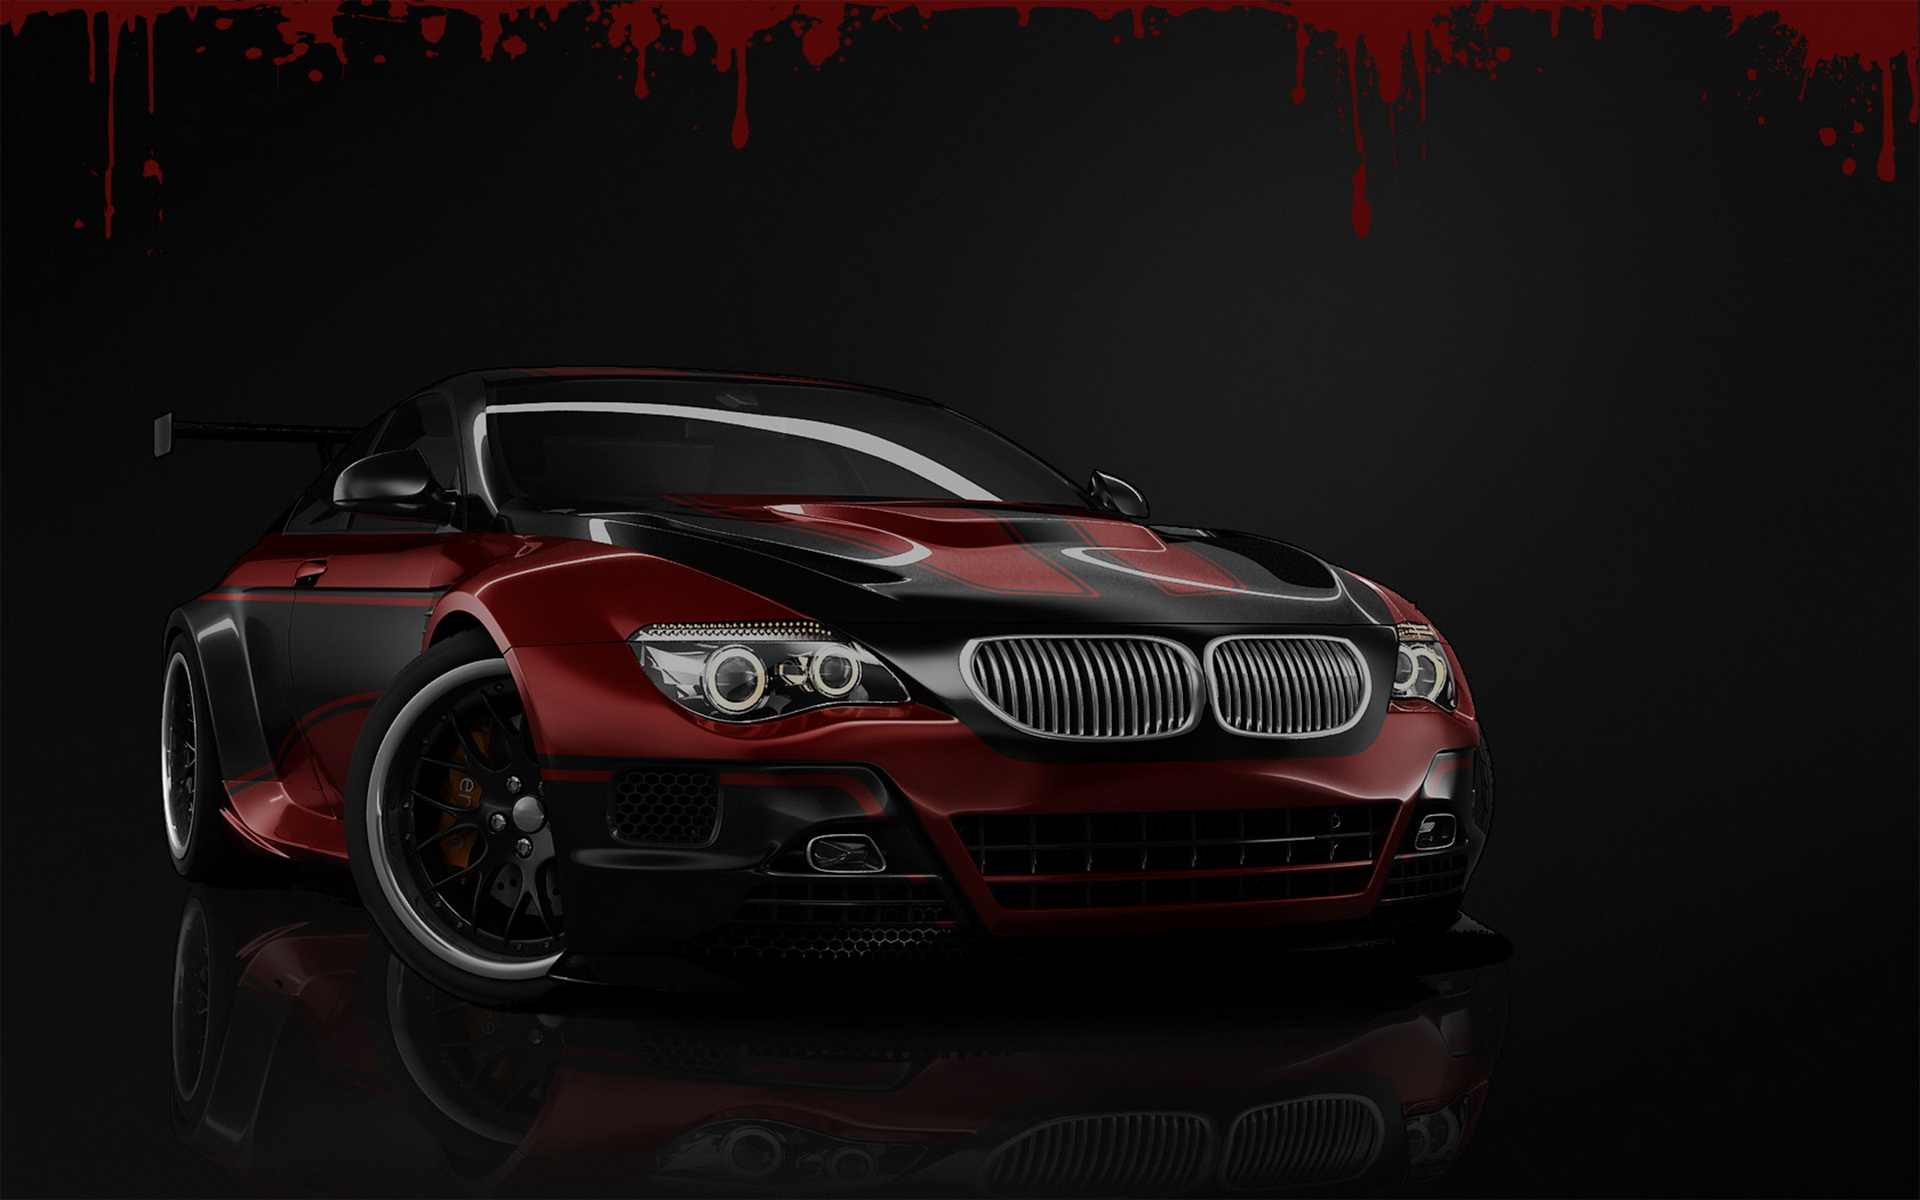 Black and Red Car Wallpaper - WallpaperSafari